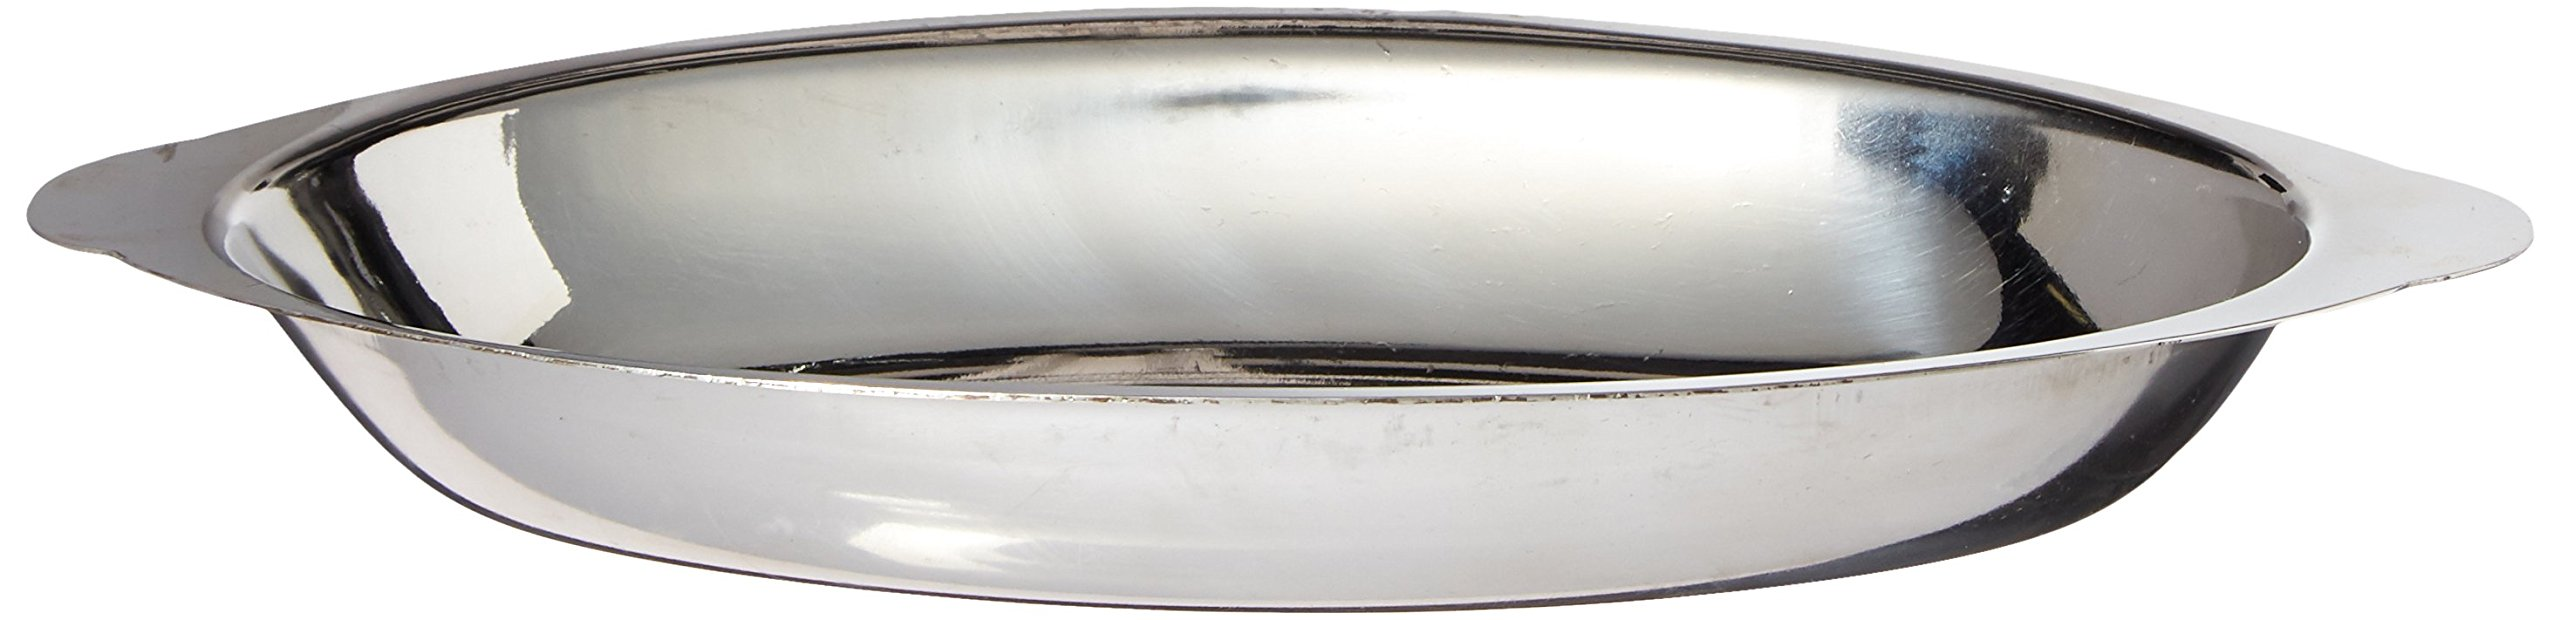 Winco ADO-12 Stainless Steel Oval Au Gratin Dish, 12-Ounce